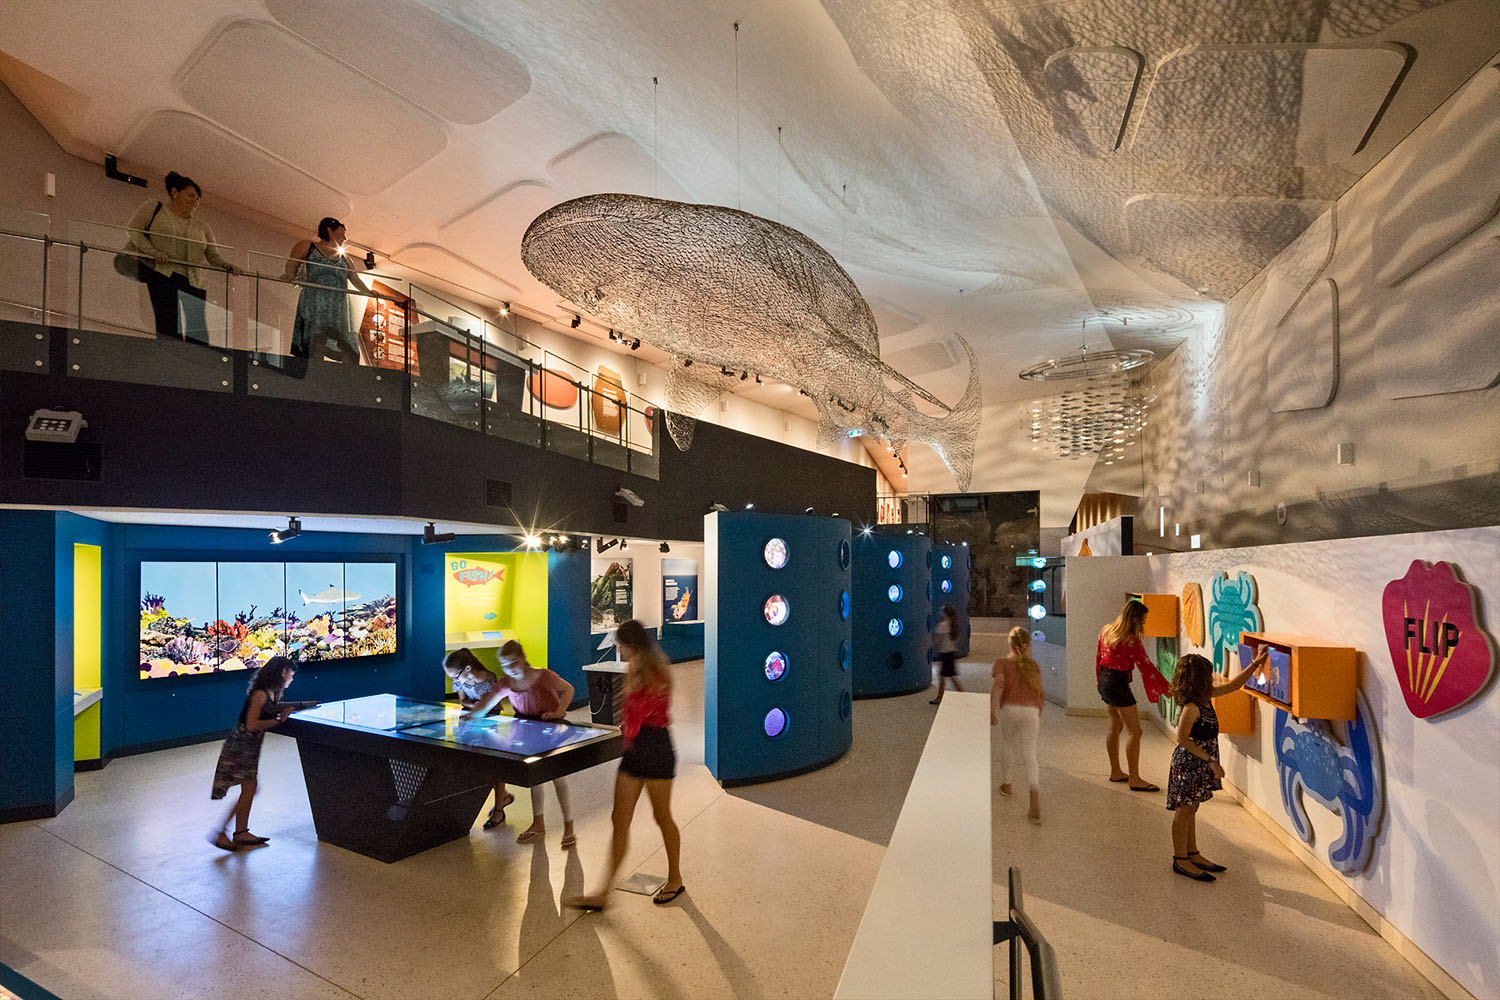 Ningaloo Centre. Marine artefacts, interactive video installations and multi-touch tables explore the complex yet fragile marine ecology of the region.